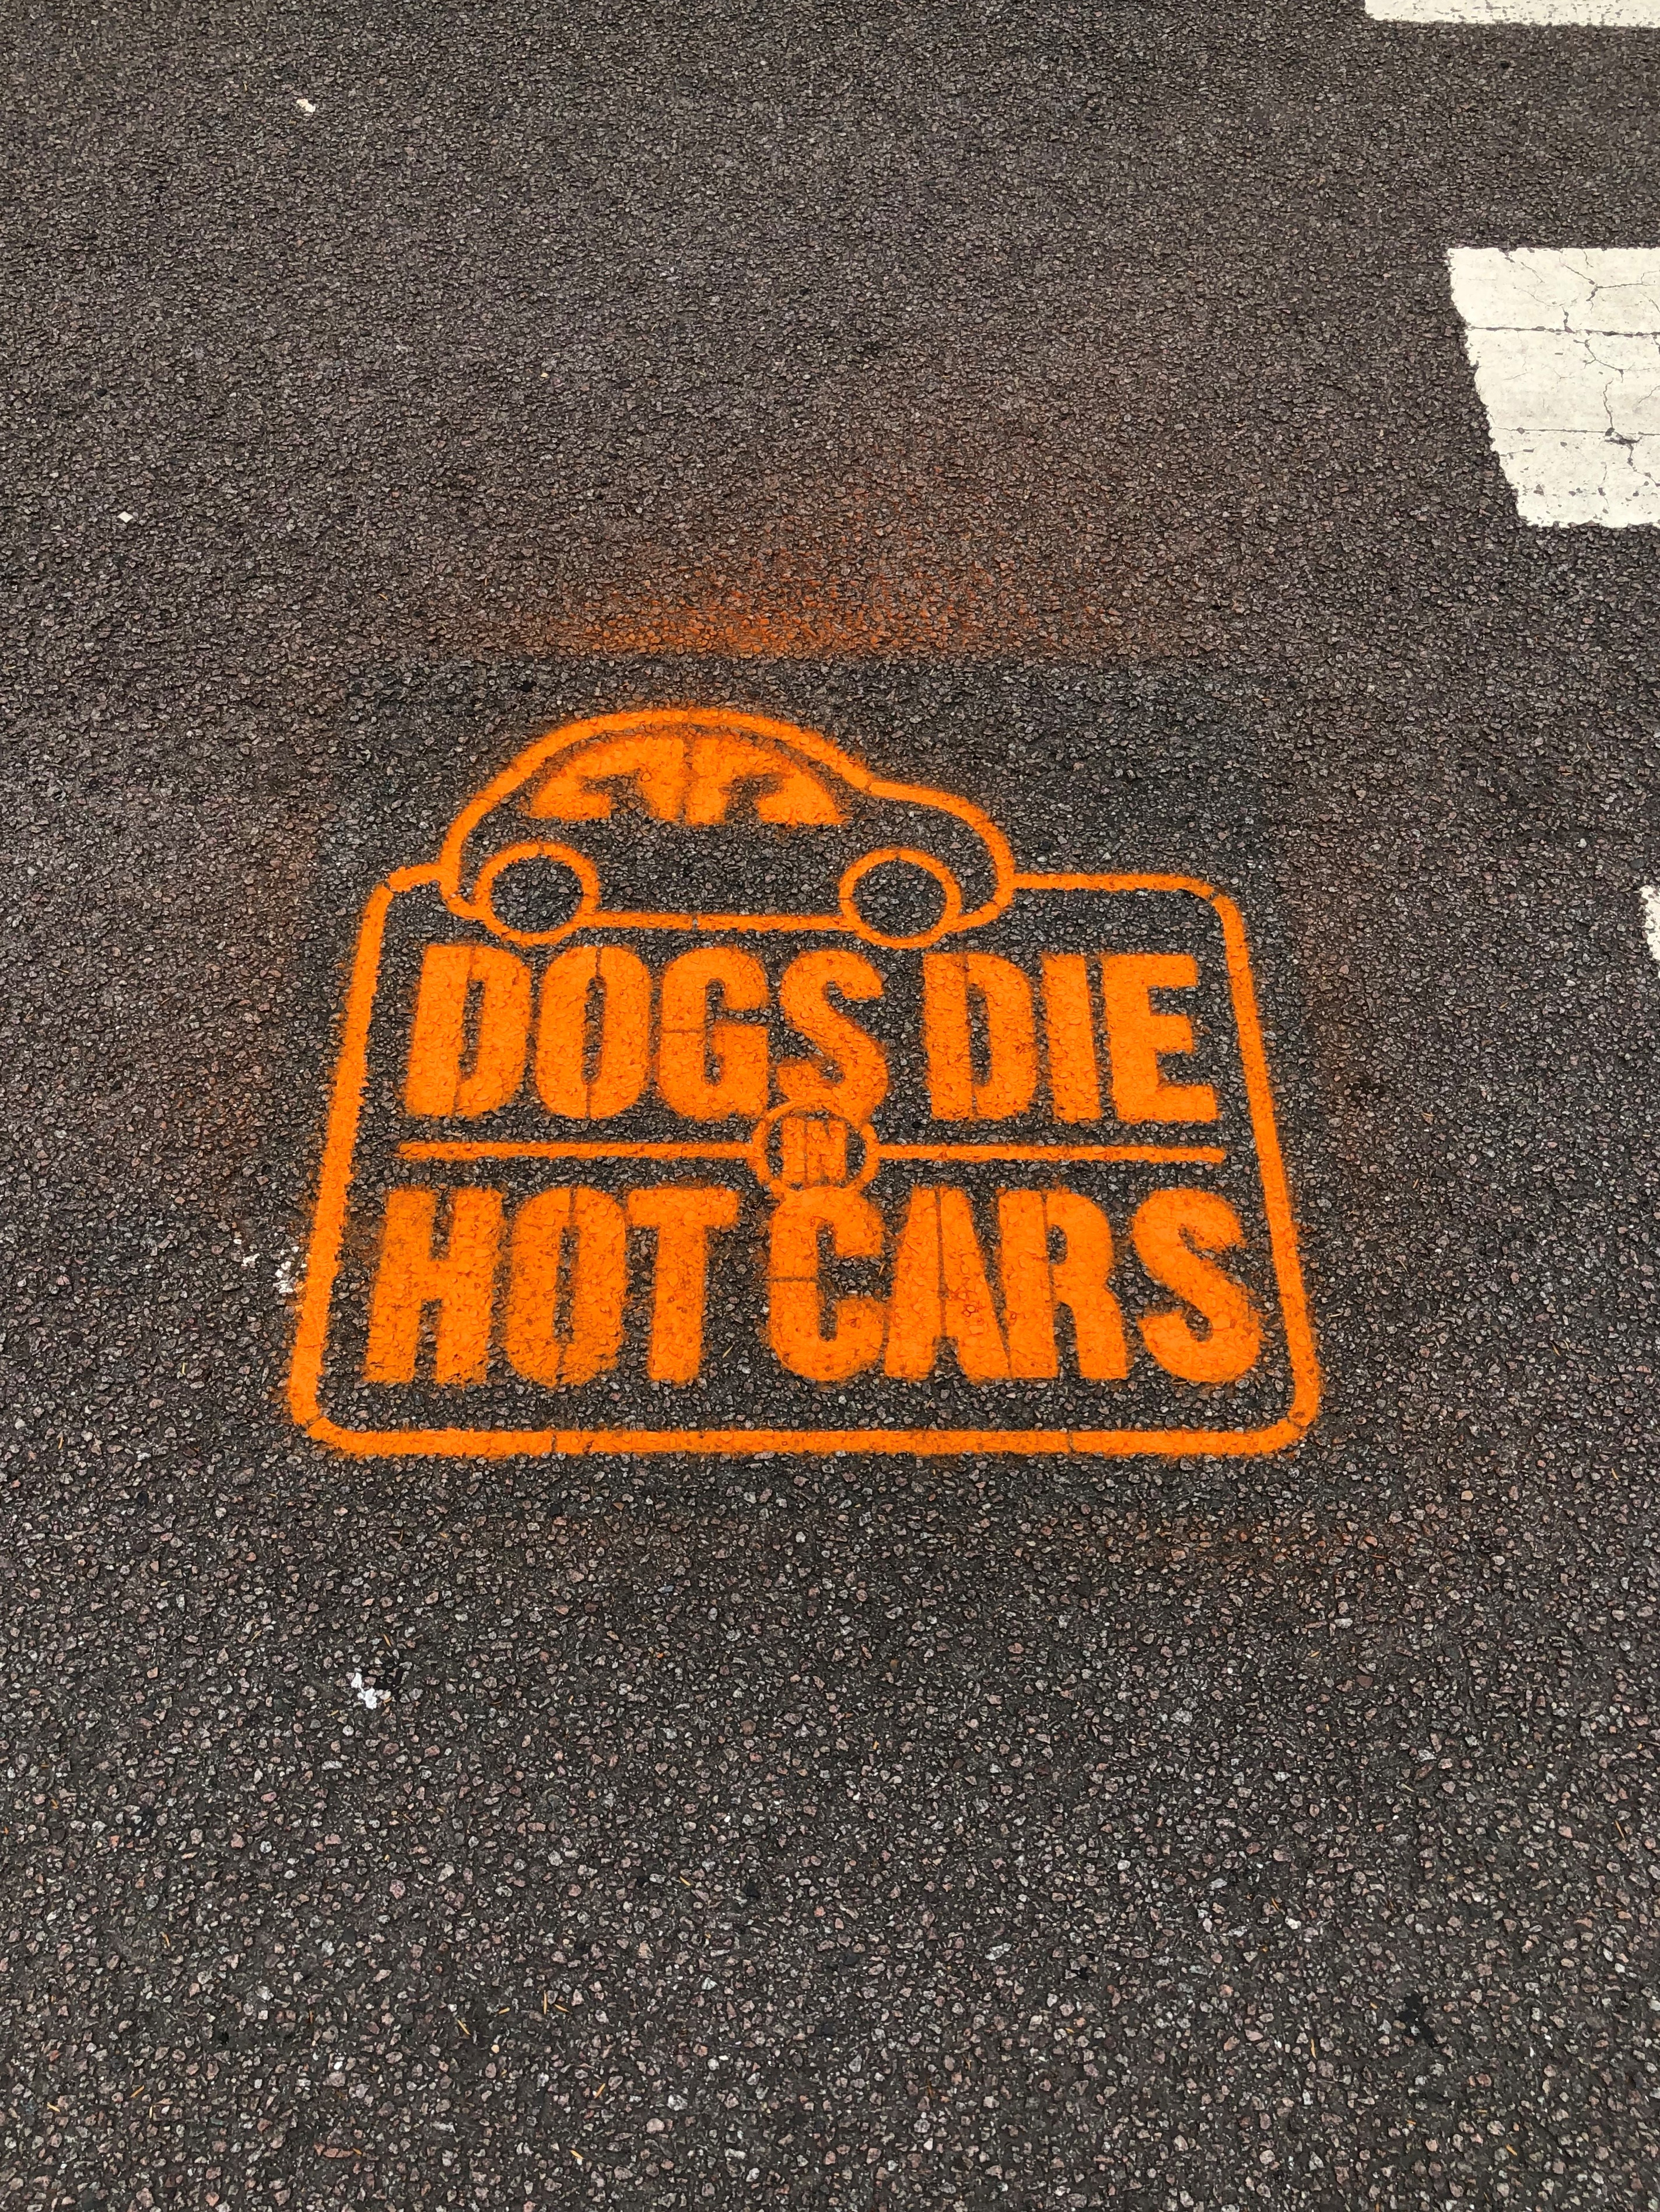 Dogs die in hot cars stencil